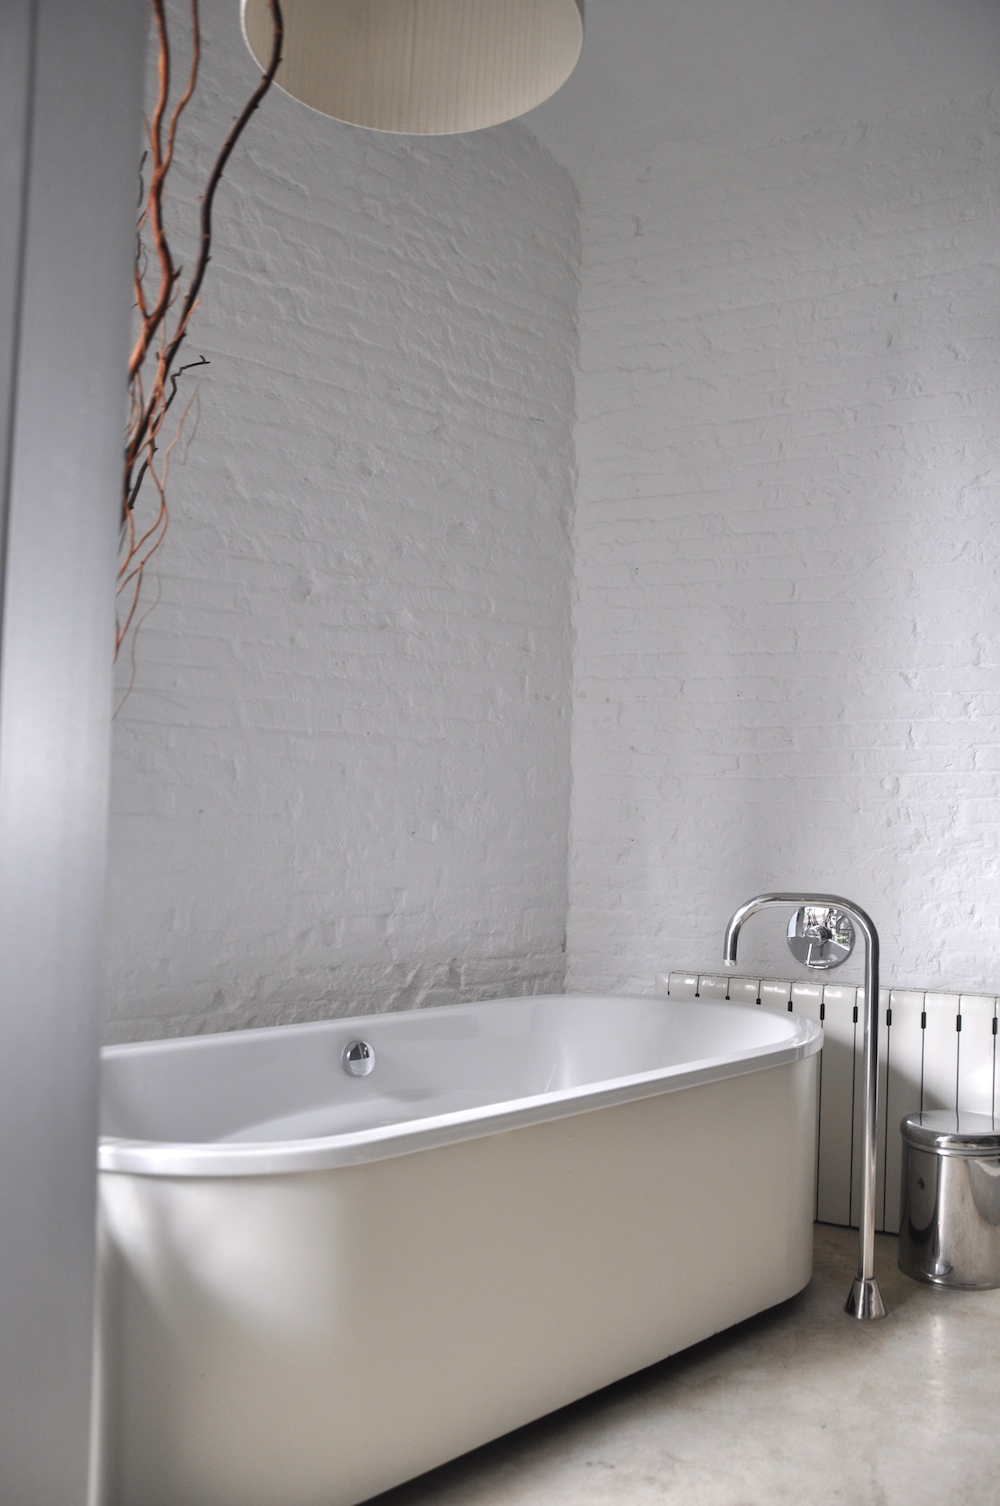 barcelona_apartment_airbnb_bathroom